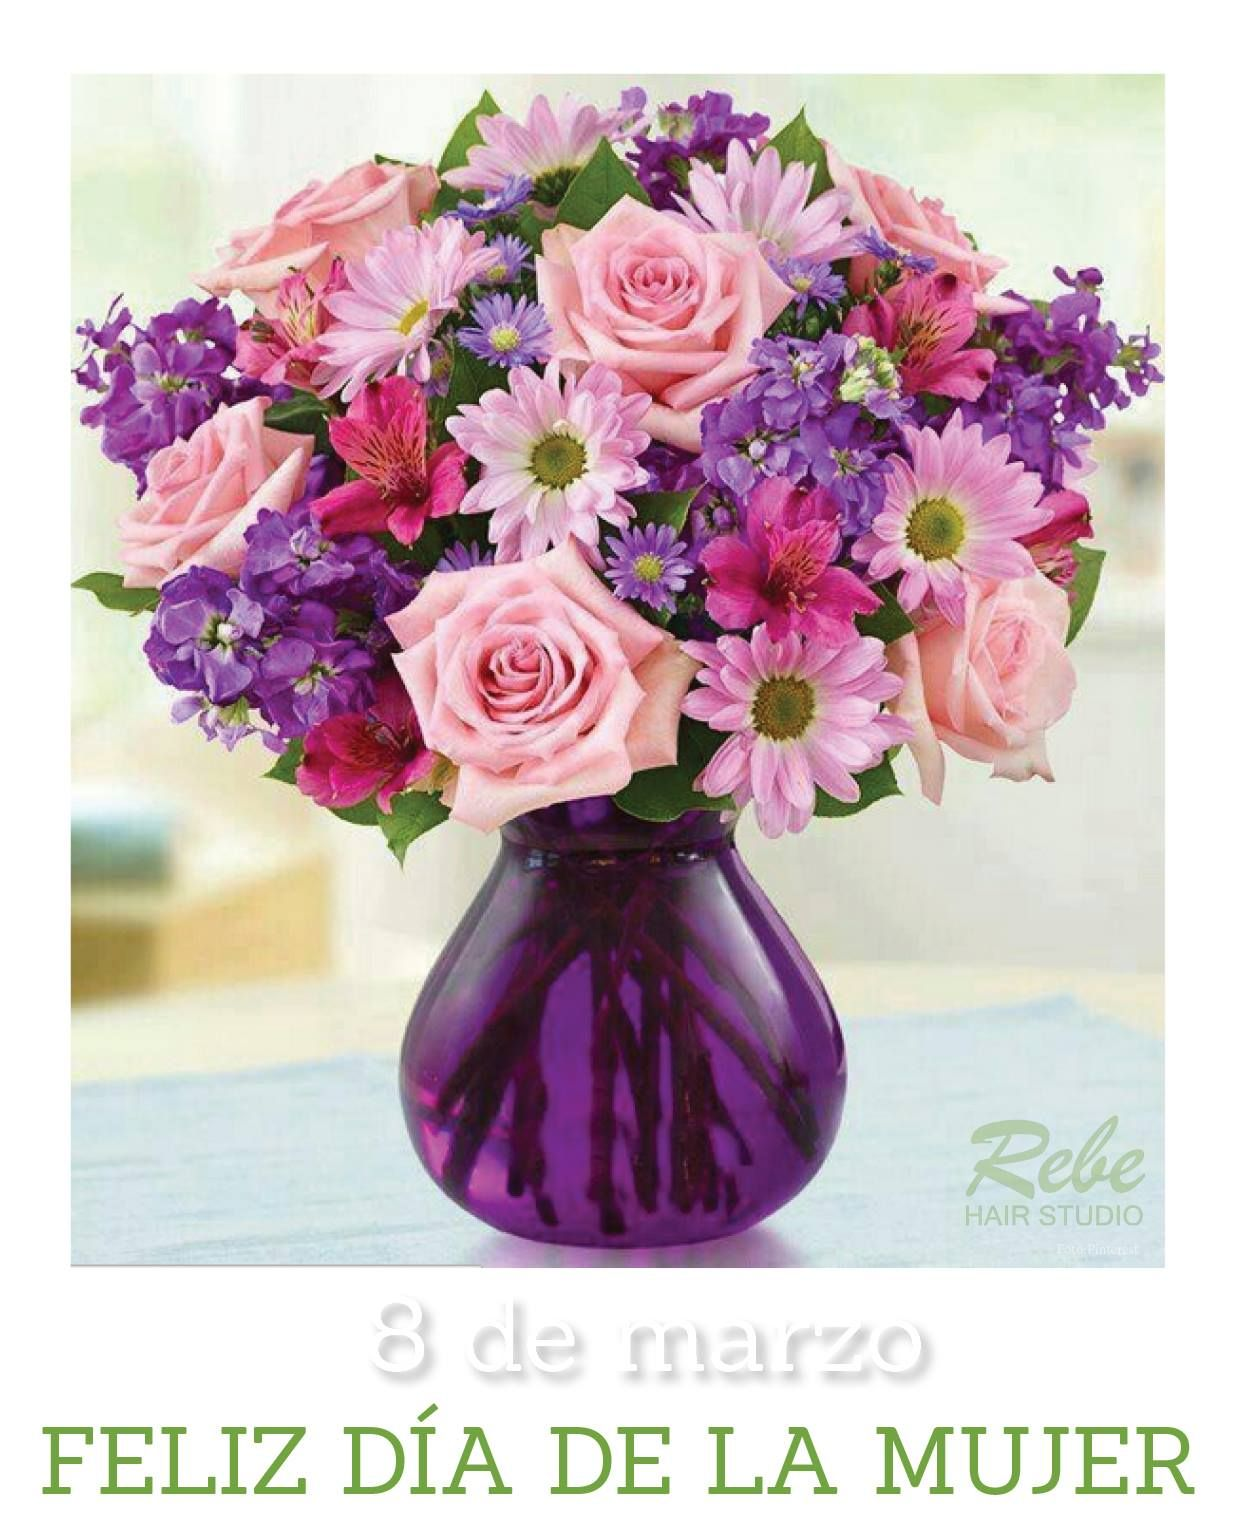 Flores dia de la mujer manualidades pinterest hair studio call to send birthday flowers in the roanoke salem or vinton va areas or nationwide izmirmasajfo